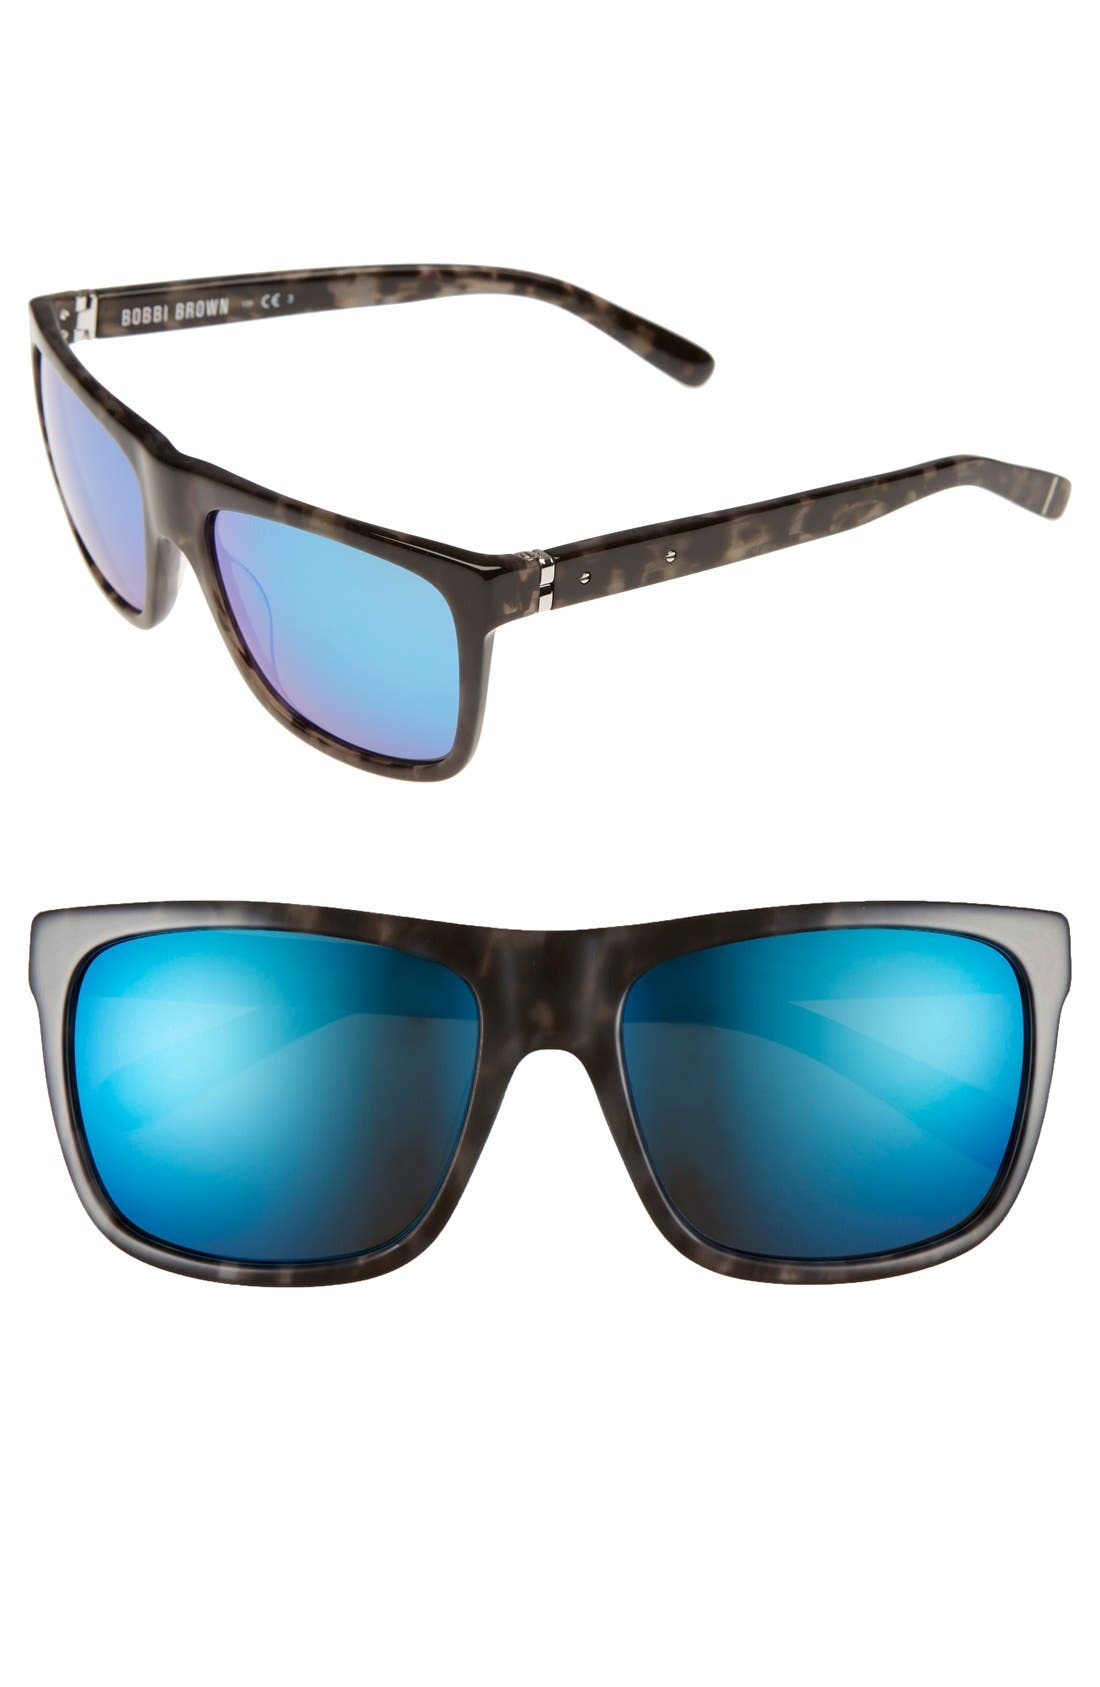 Alternate Image 1 Selected - Bobbi Brown 'The Harley' 55mm Sunglasses